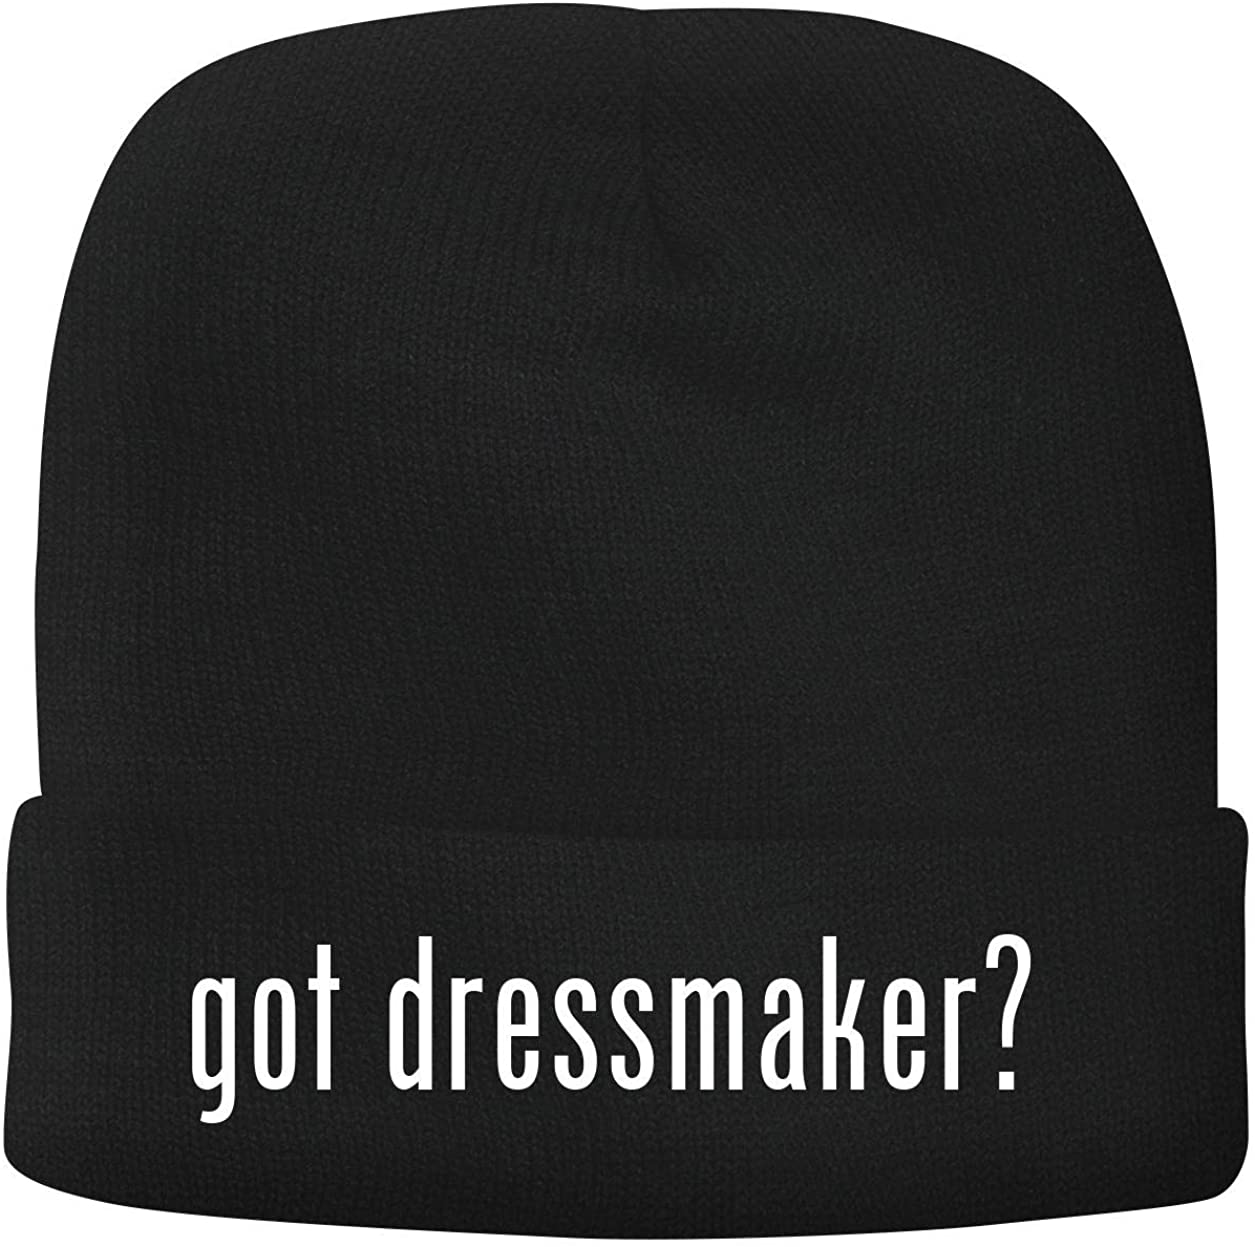 BH Cool Designs got Dressmaker? - Mens Soft & Comfortable Beanie Hat Cap